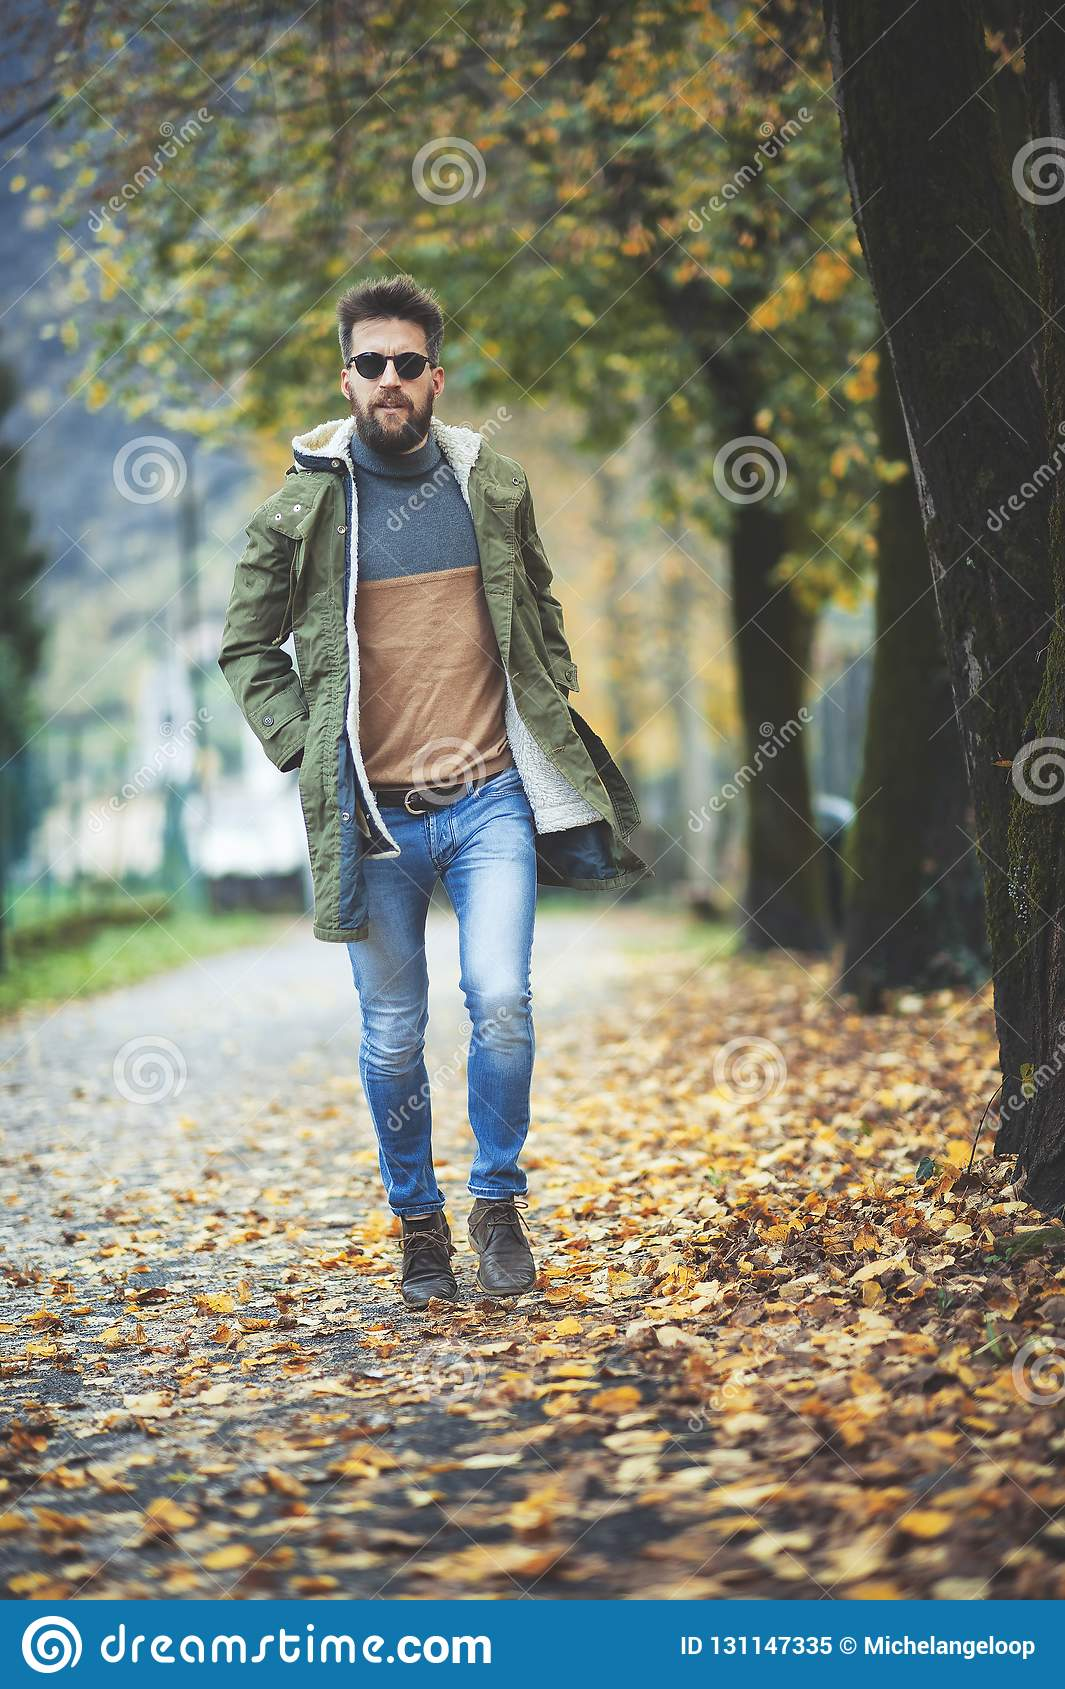 Casual hippie style man walking among autumn leaves